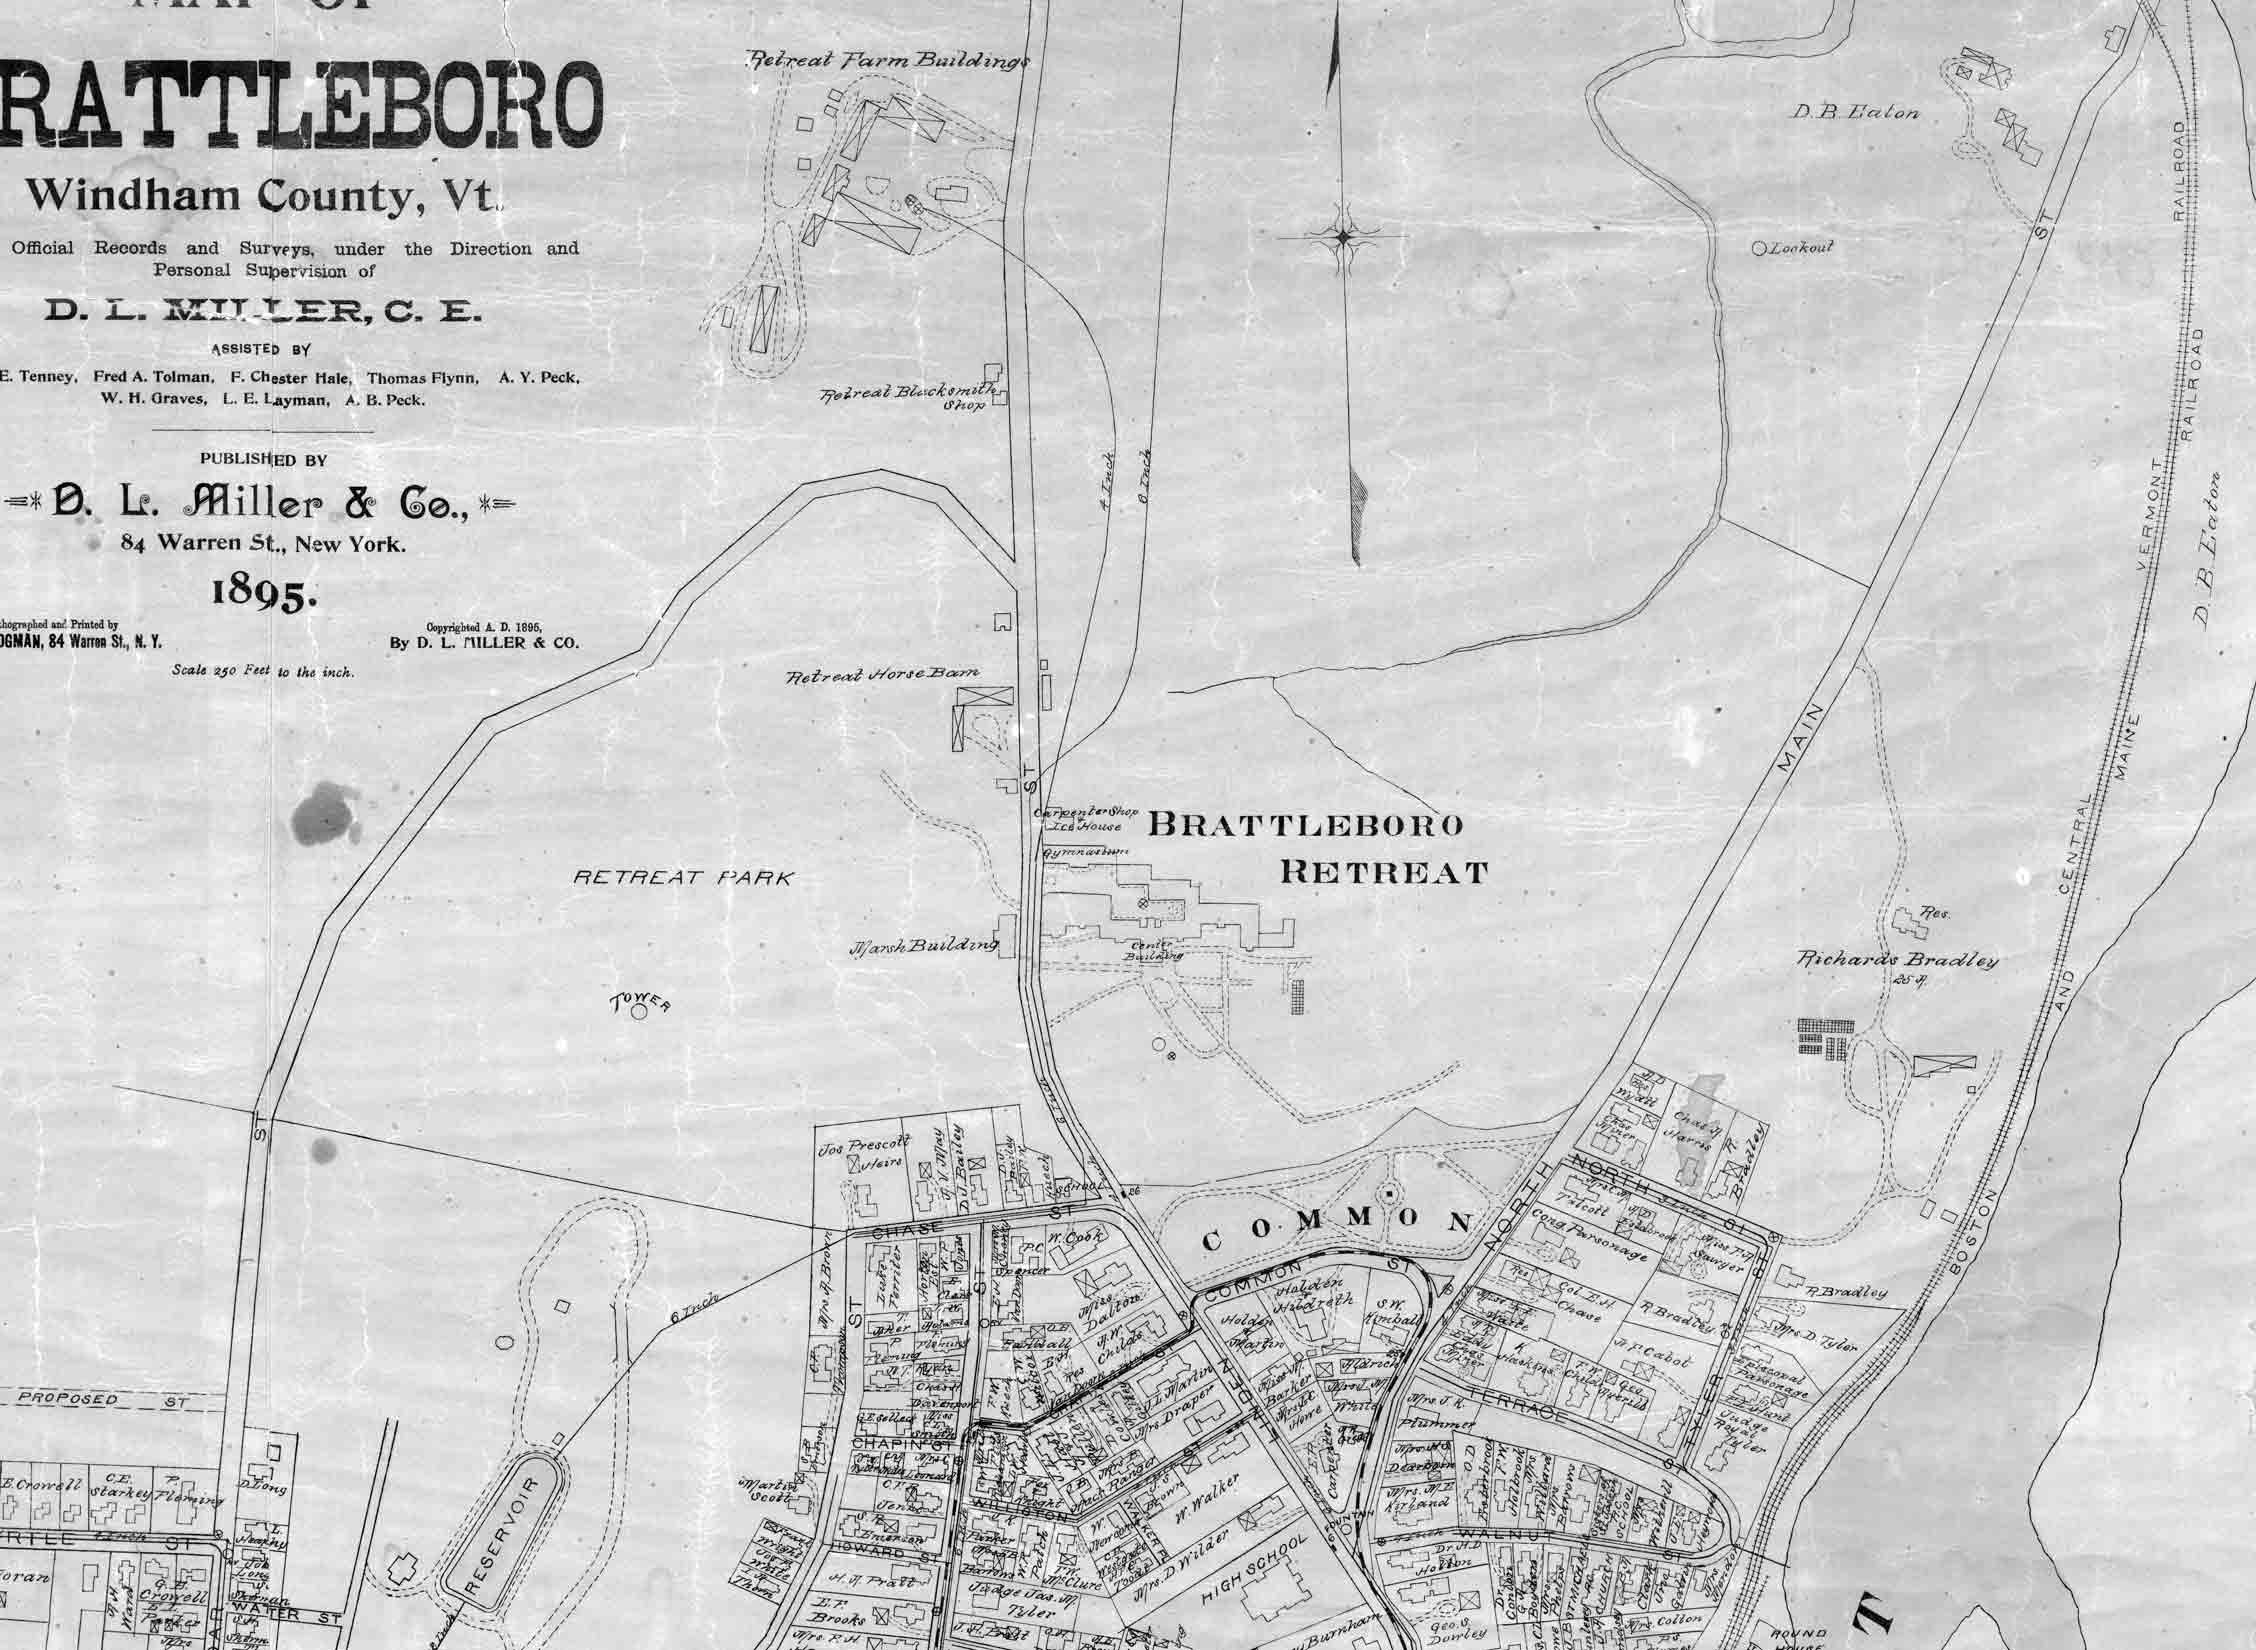 7c Land Ownership Maps DOWNTOWN 1895 Brattleboro History